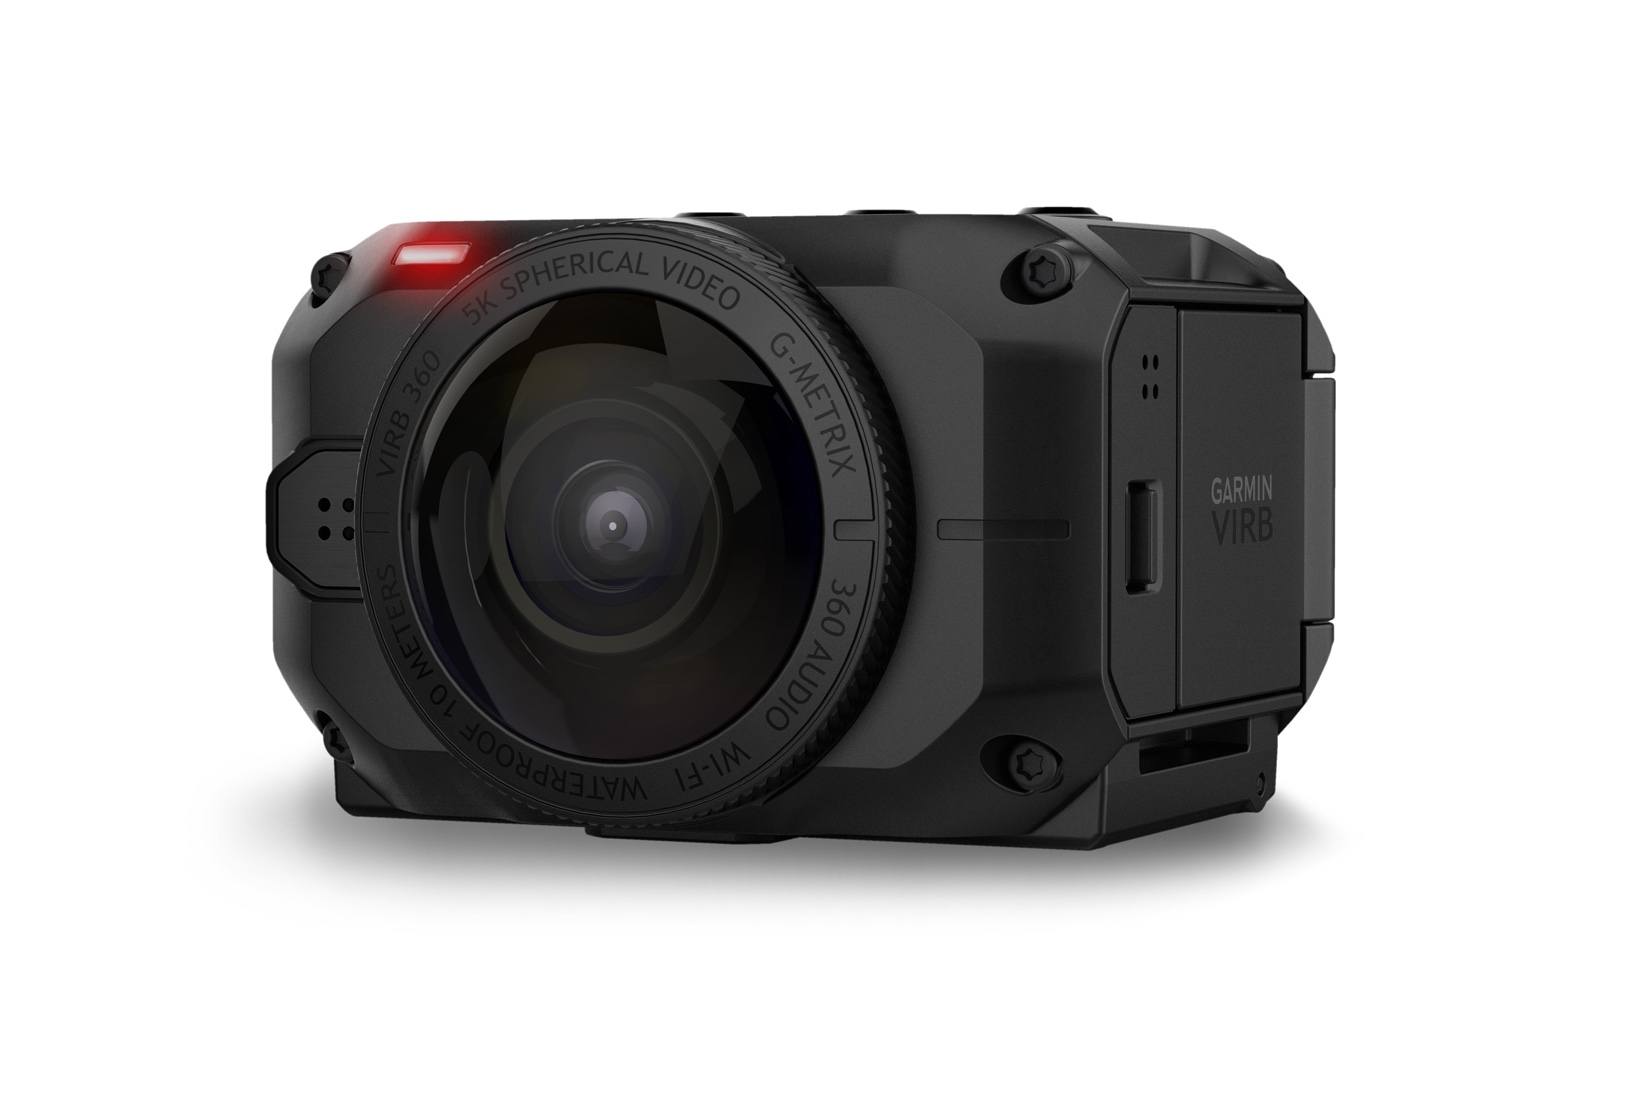 Garmin Virb 30 Is The Perfect Spherical Camera Front View